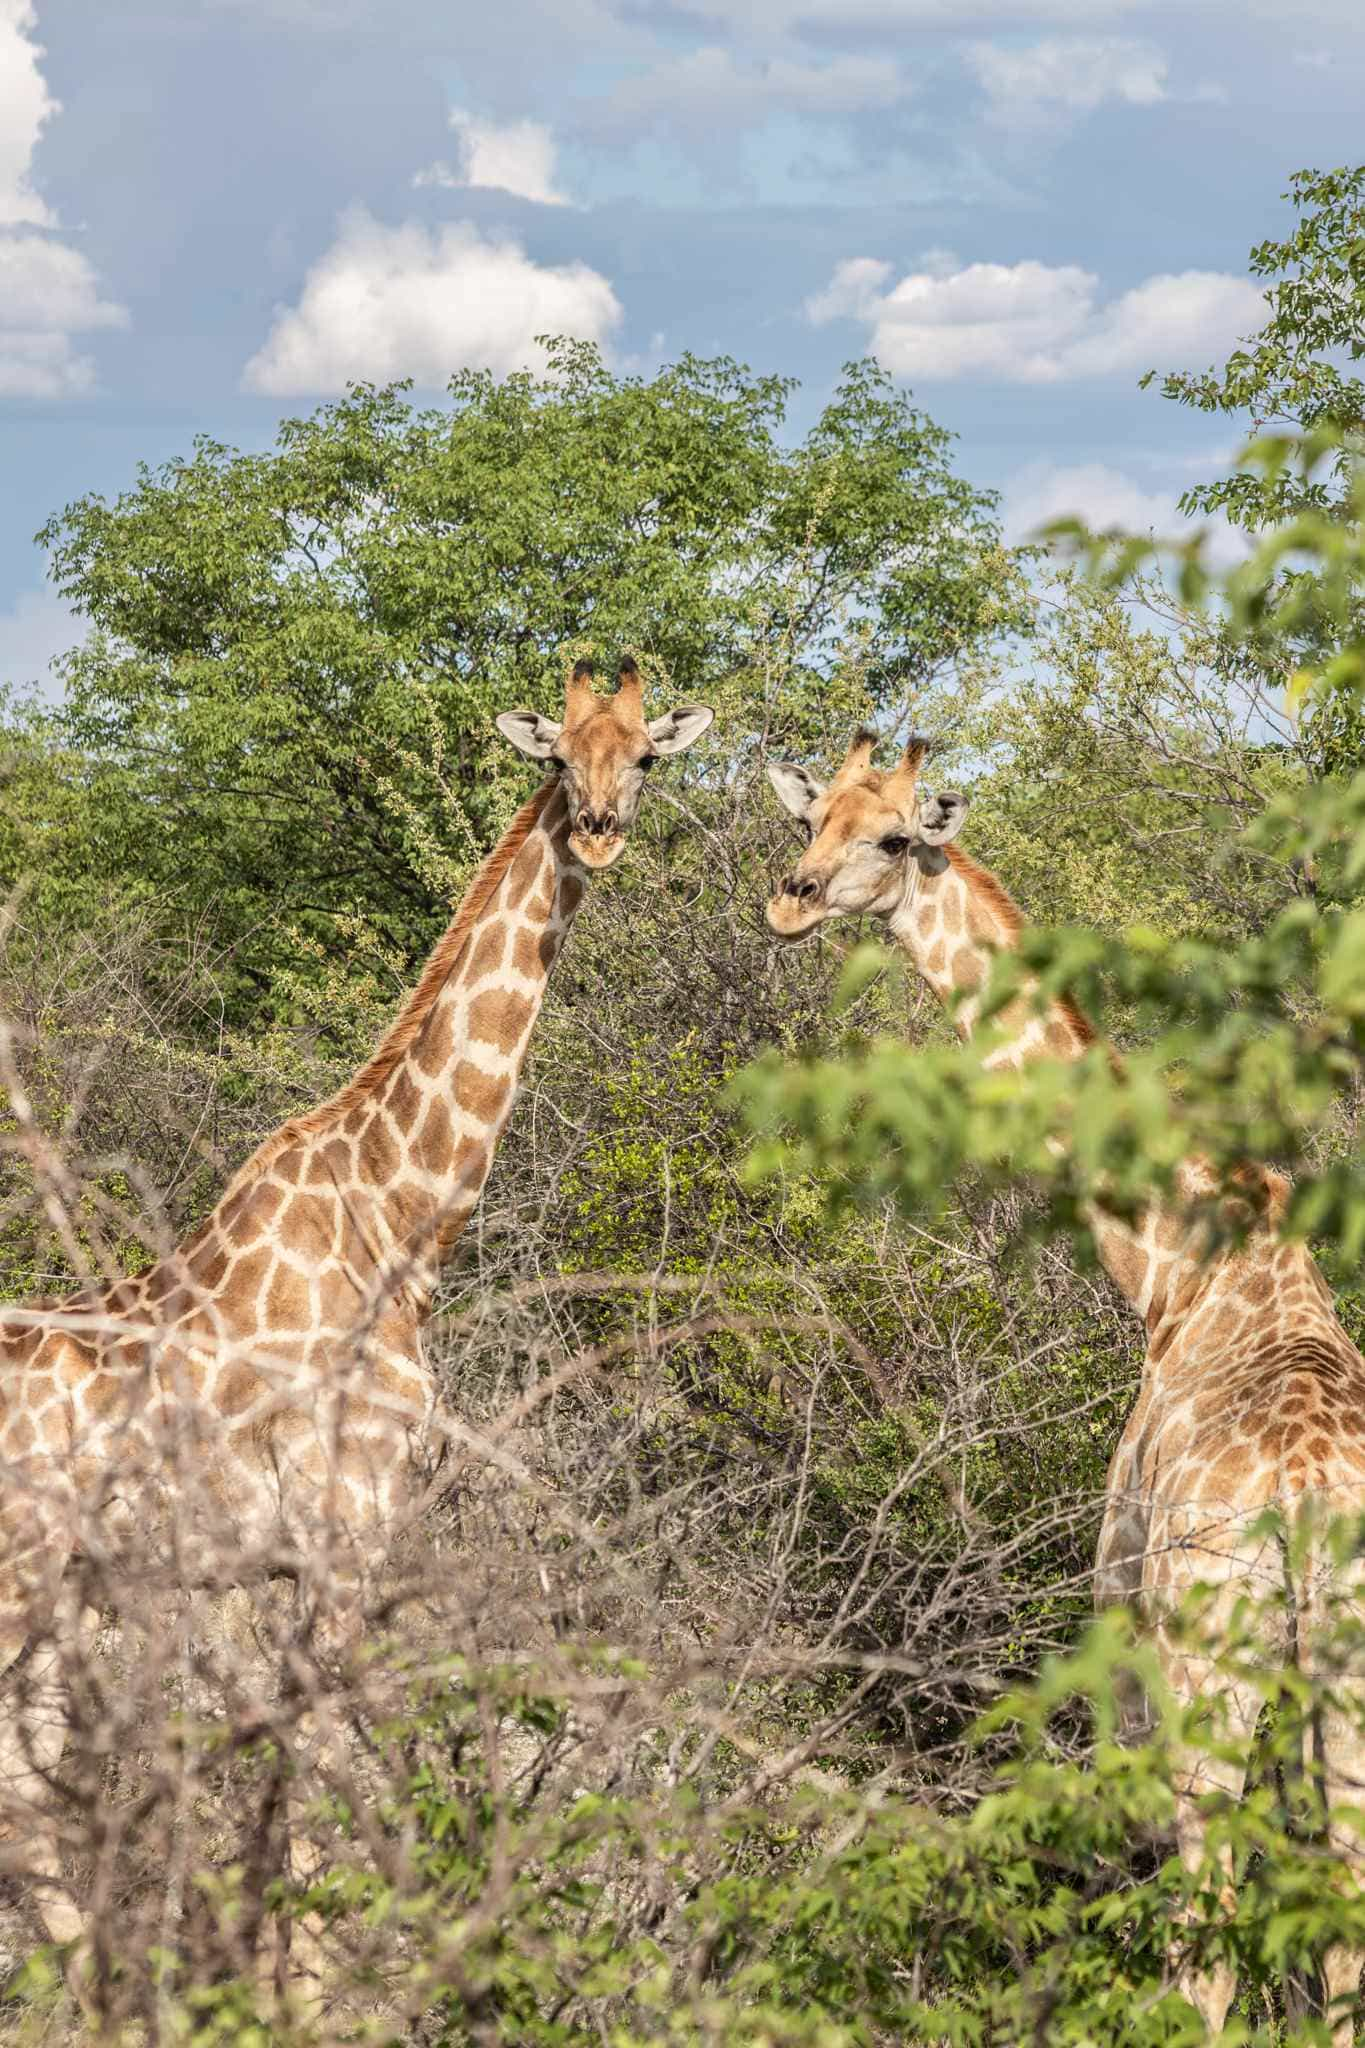 two giraffes in the bush staring at us